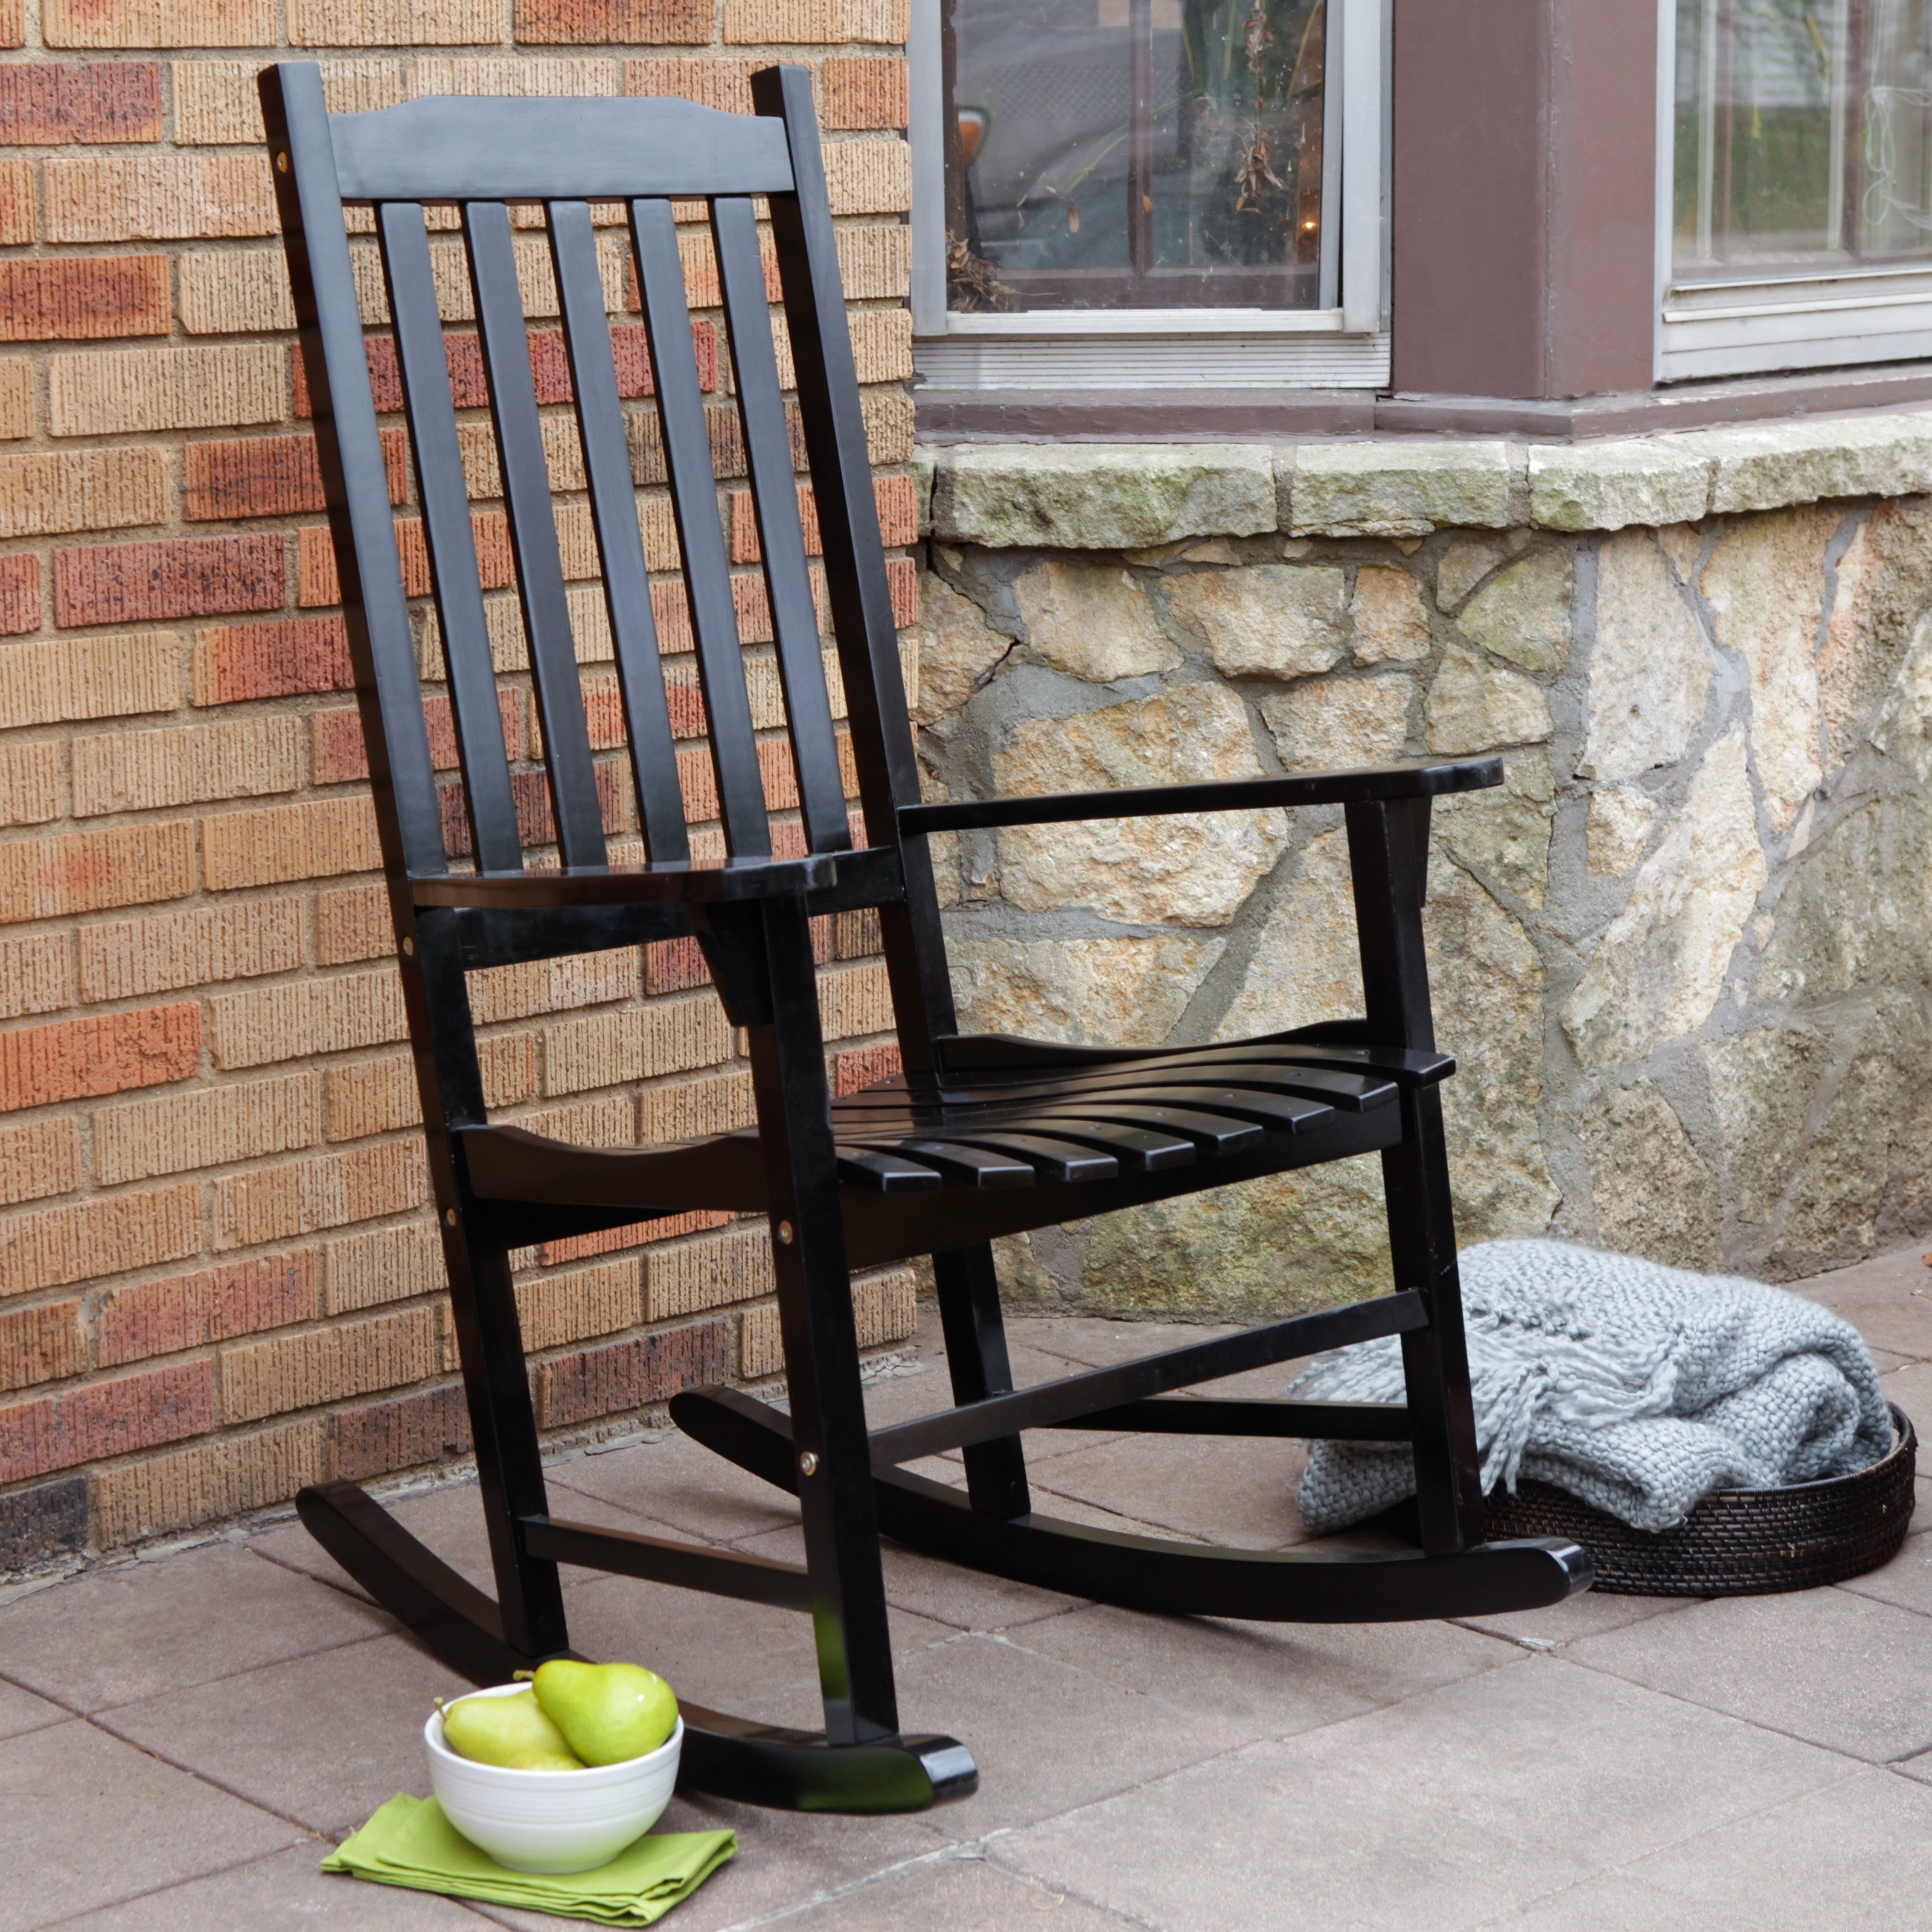 Popularity Gaining Outdoor Rocking Chairs – Carehomedecor Pertaining To Most Recent Rocking Chairs For Porch (View 4 of 15)